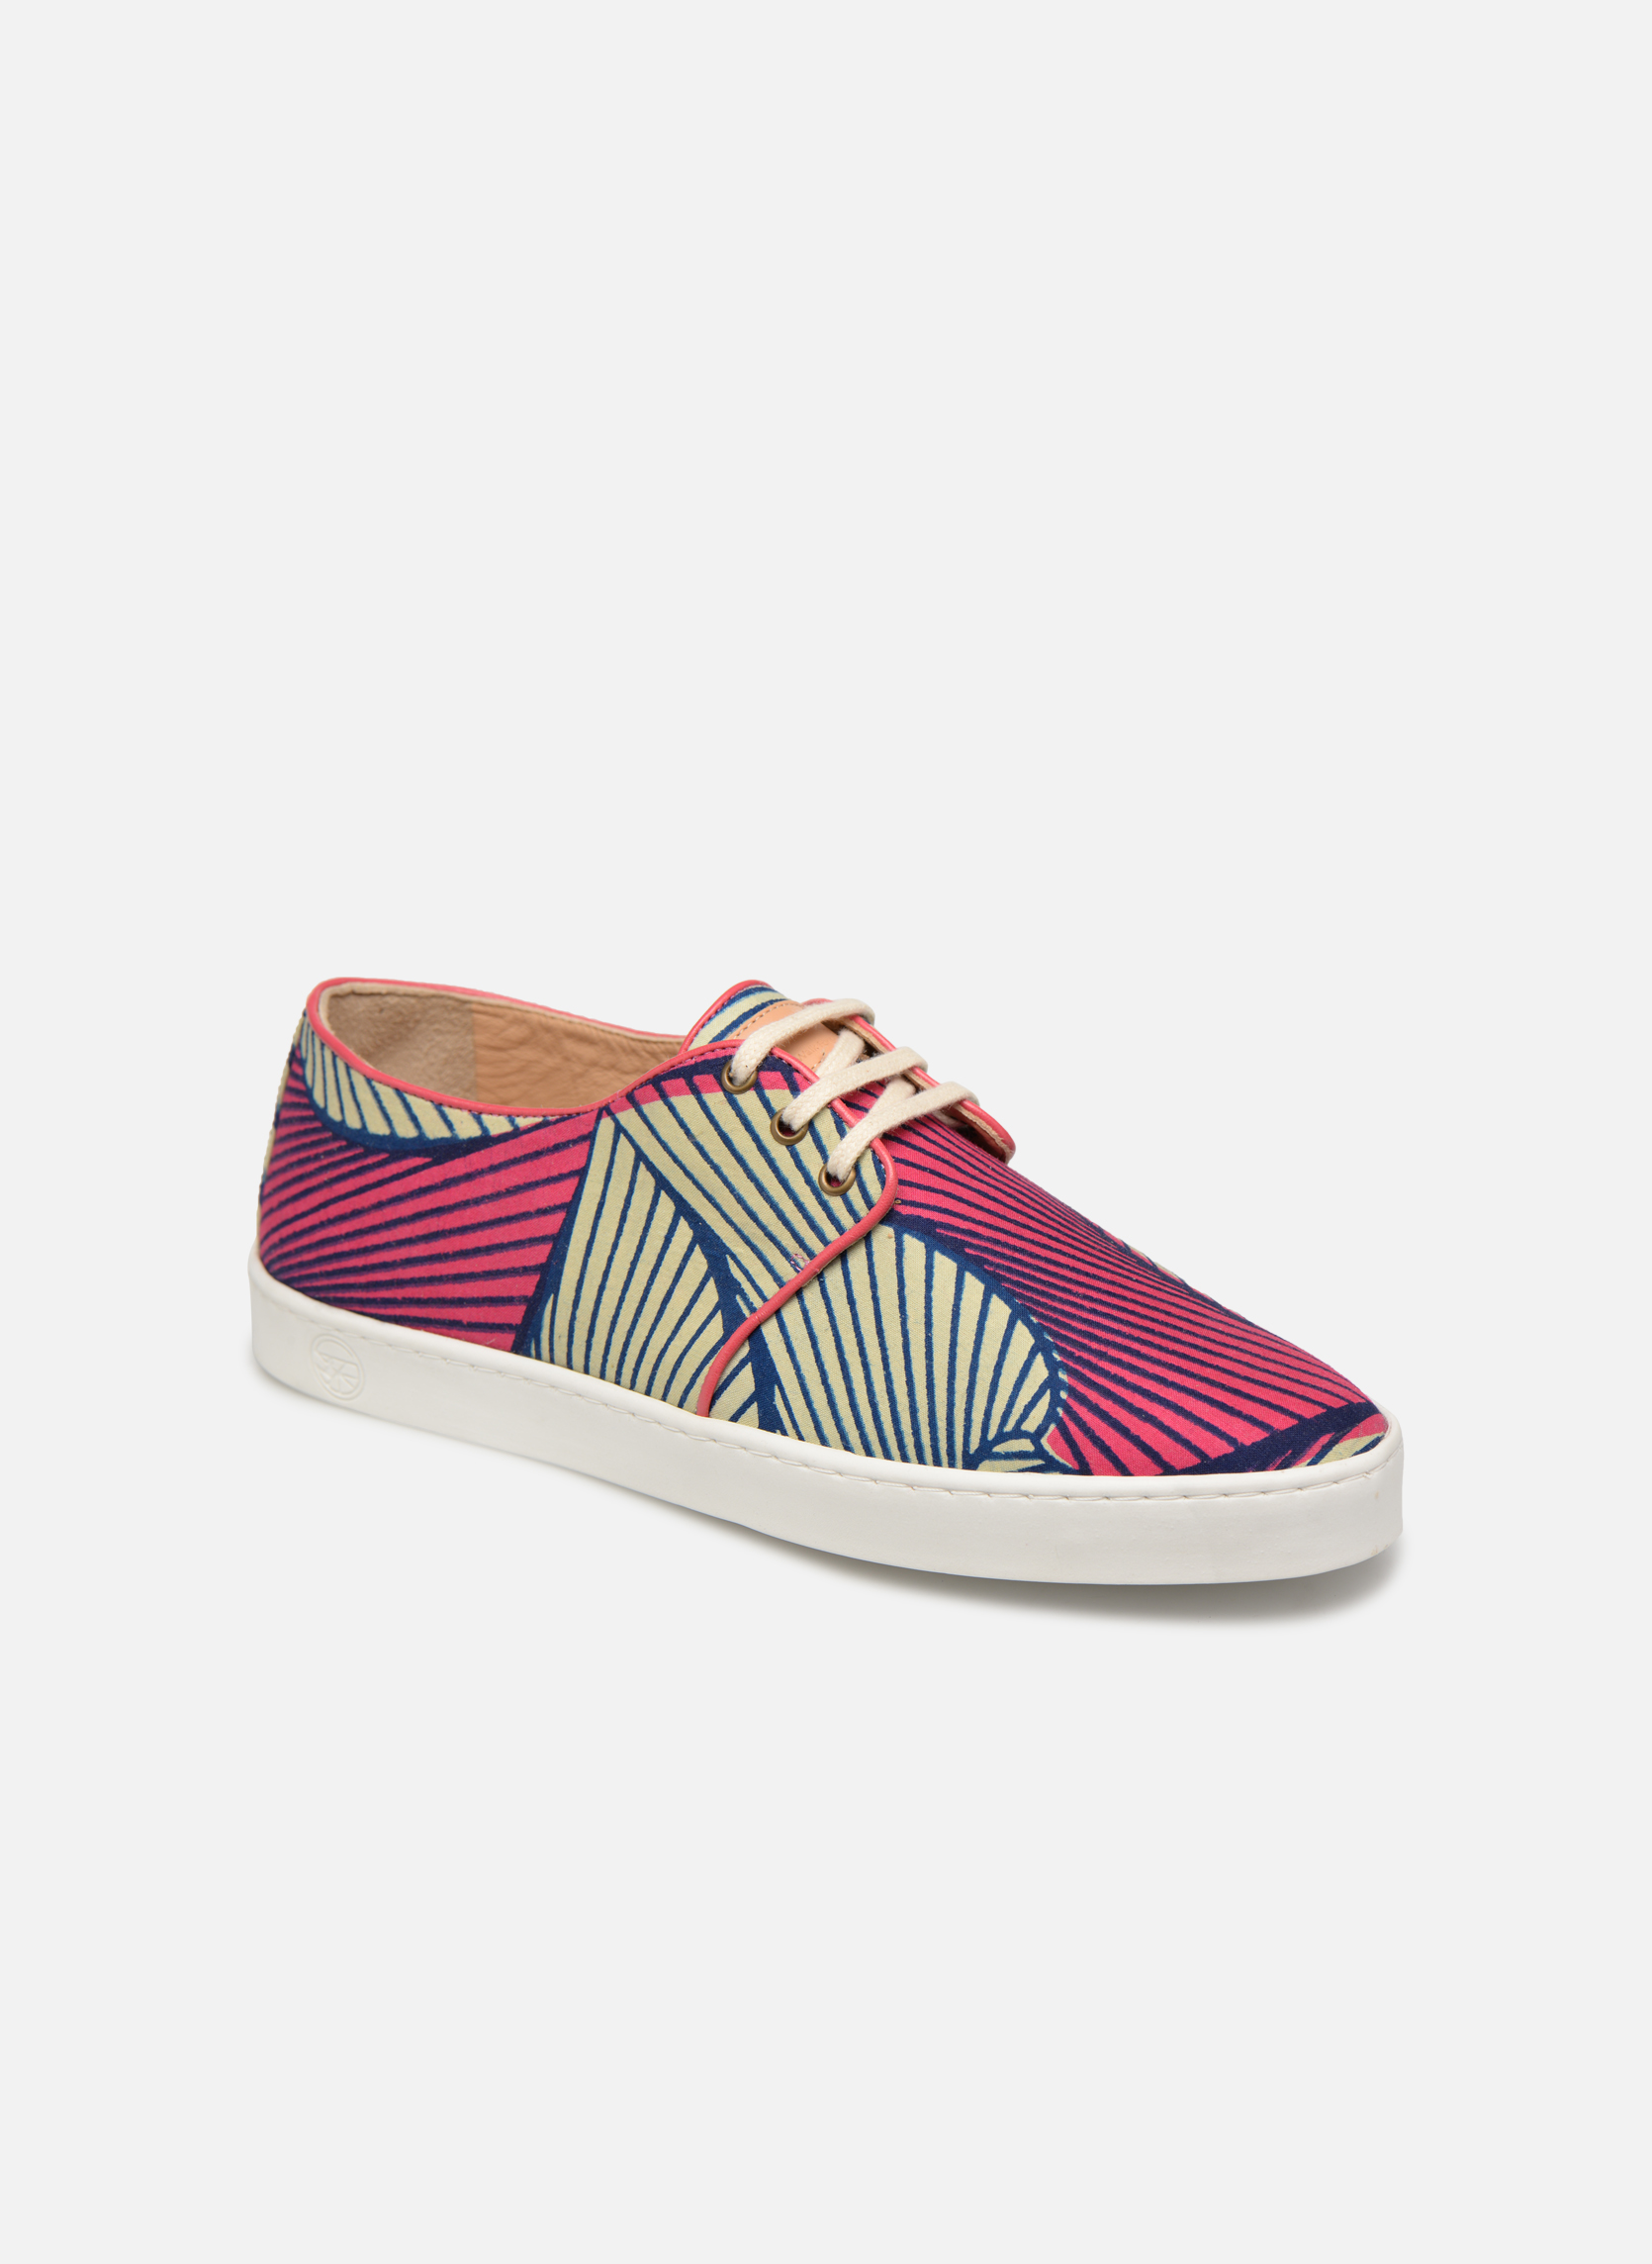 Sneakers Oasis W by Panafrica